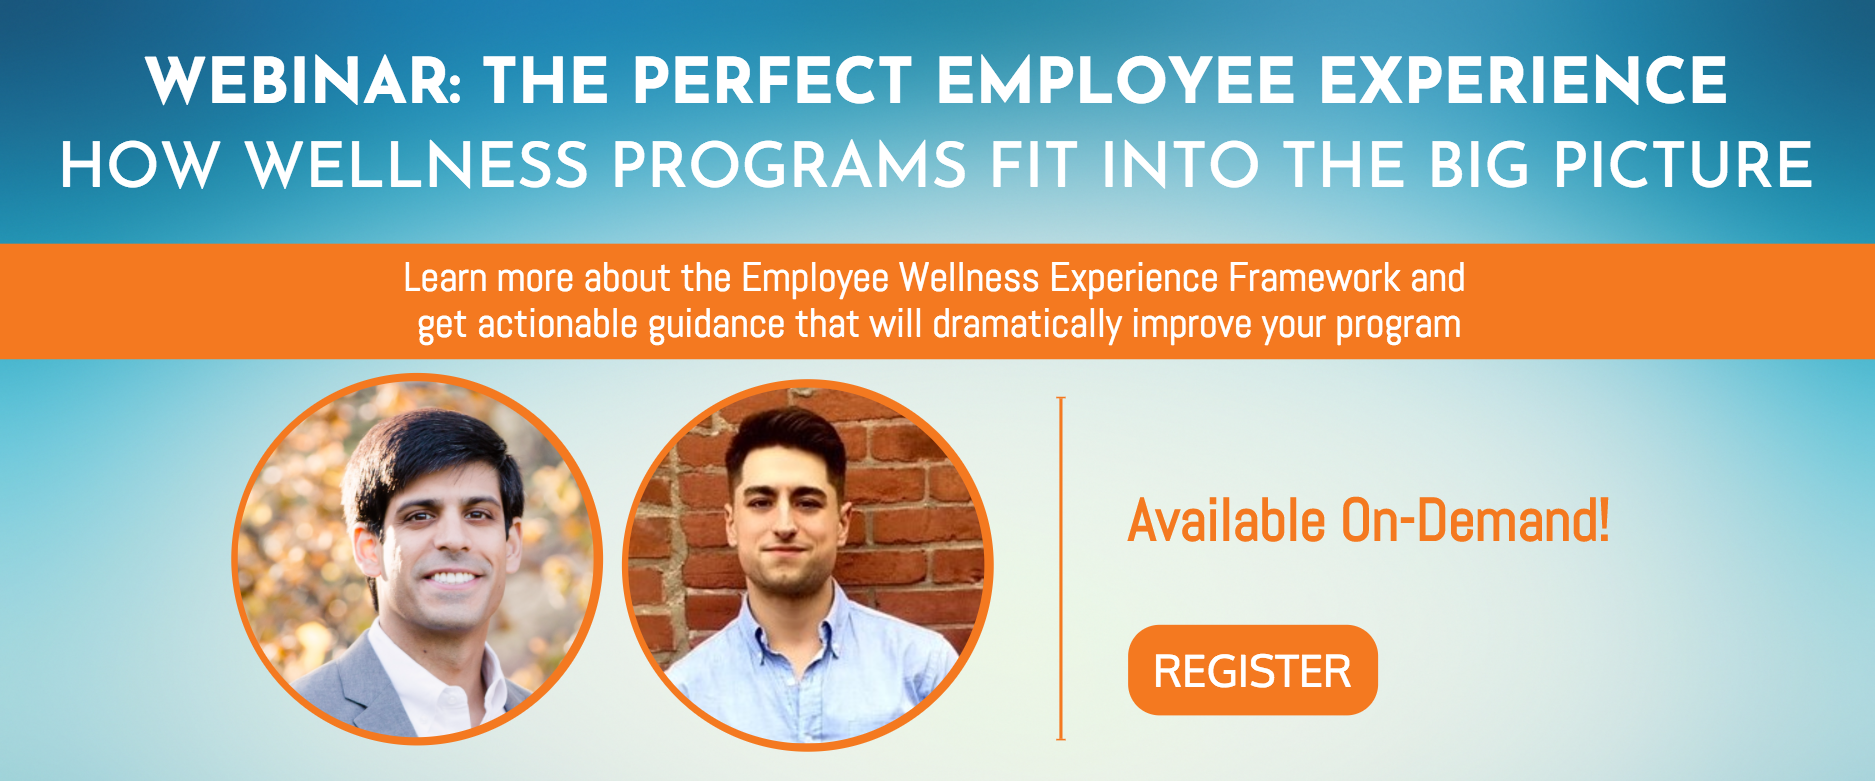 Webinar: The Perfect Employee Experience